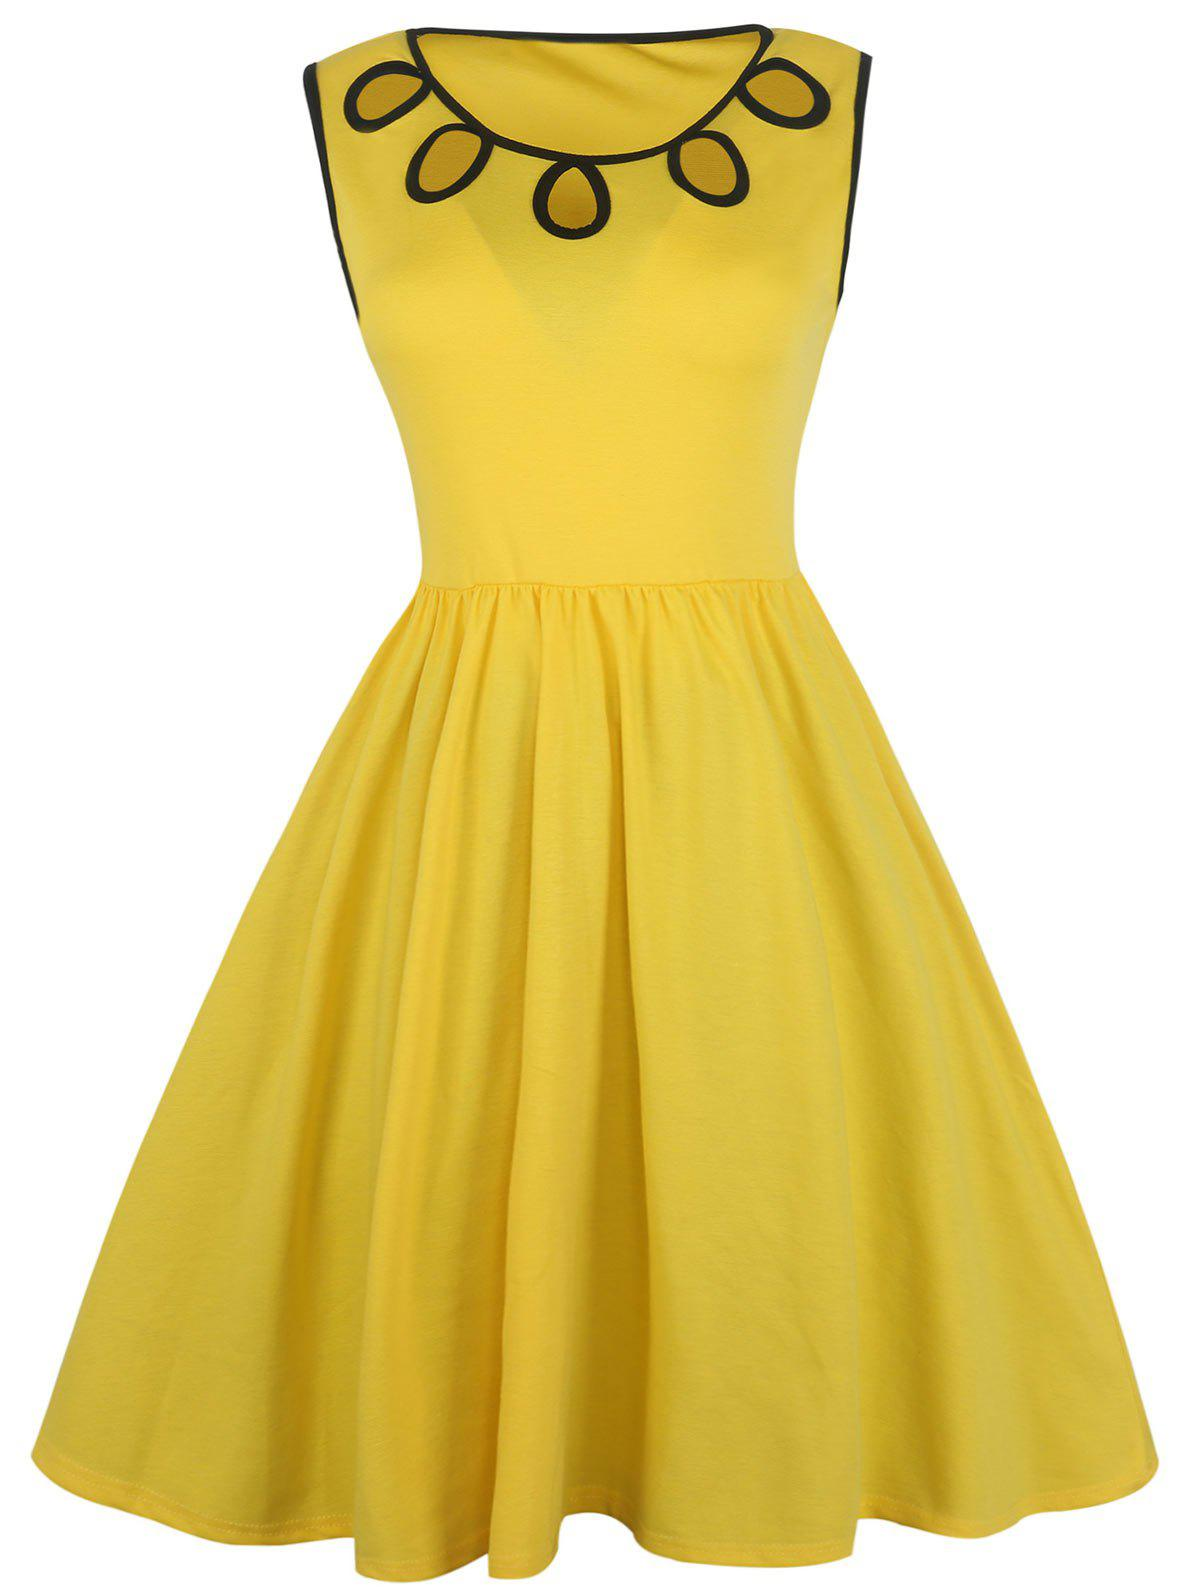 Best A Line Cut Out Sleeveless Dress